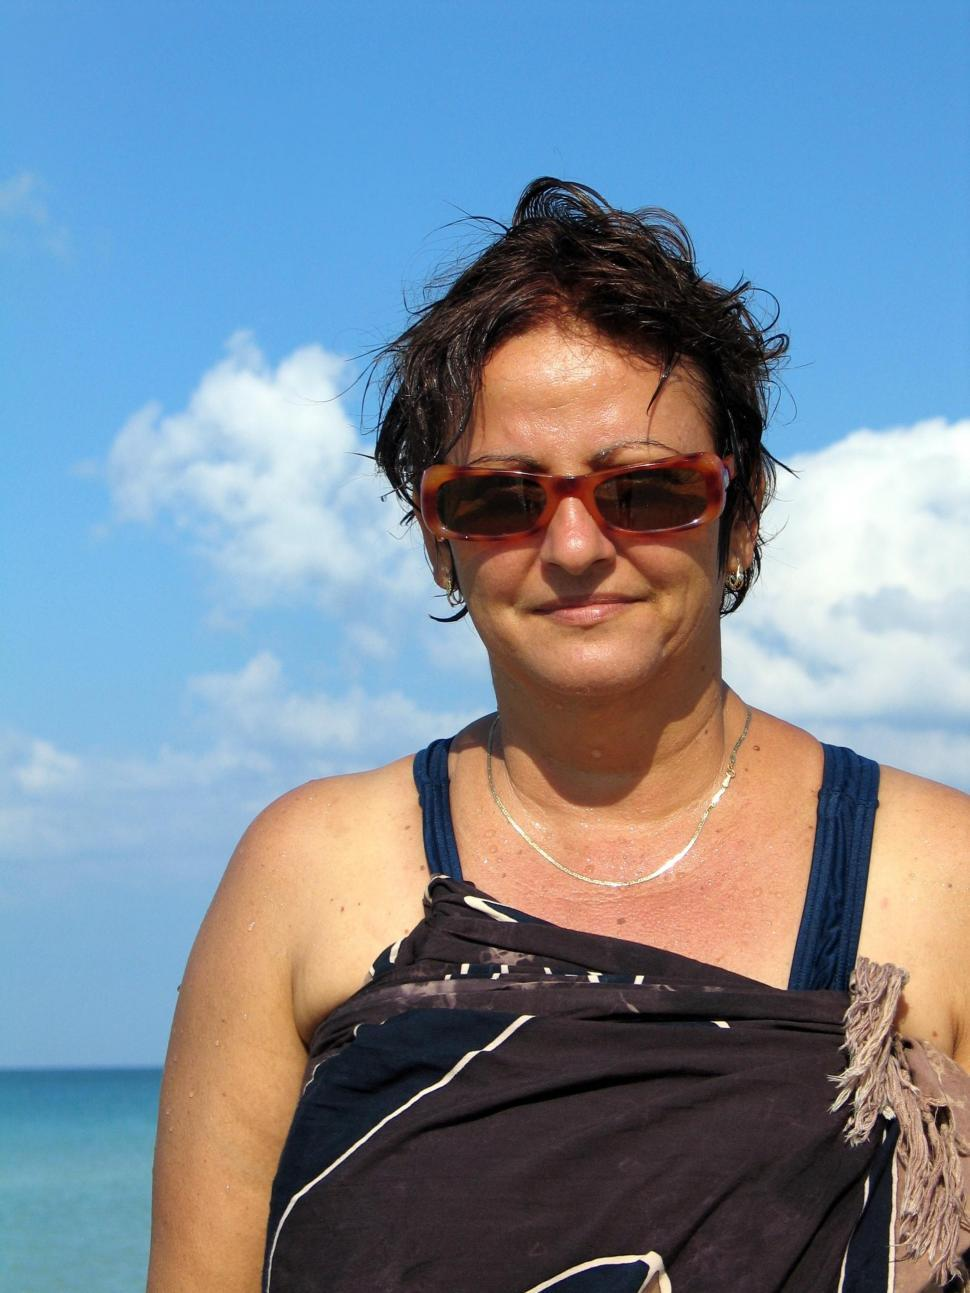 Free image of Portrait of mature woman wearing sunglasses on the beach